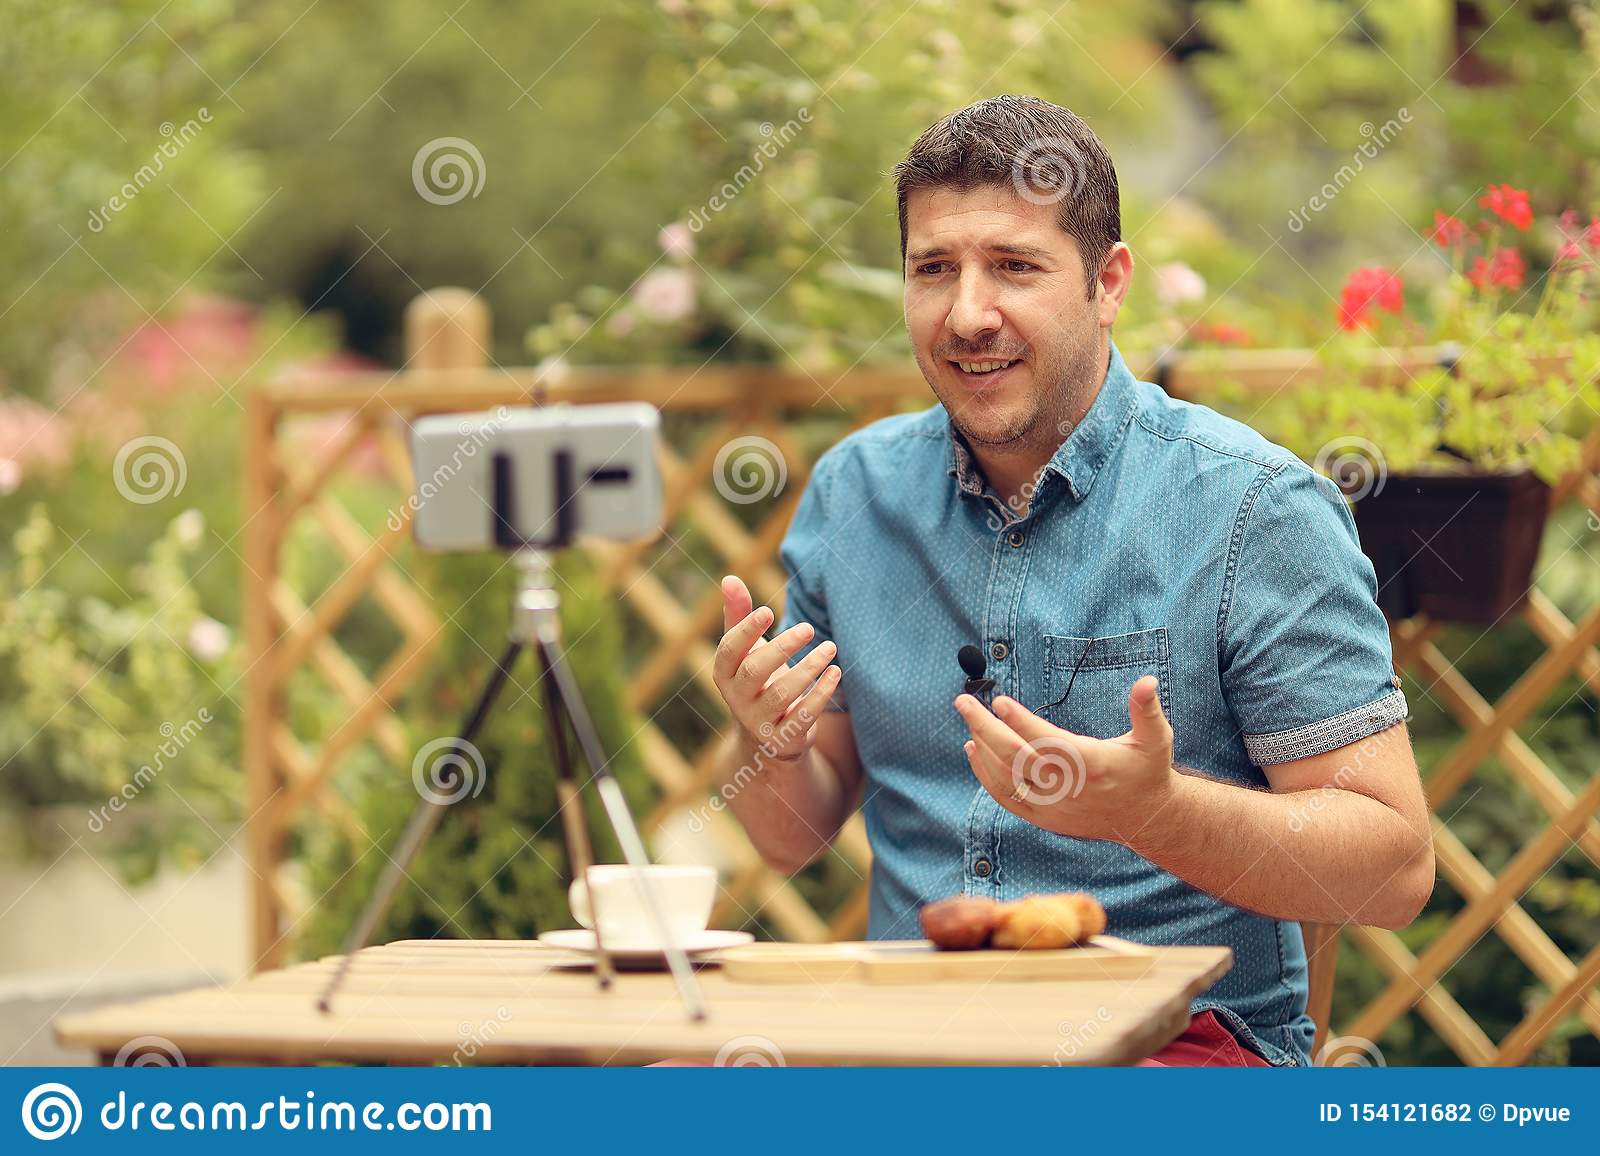 Relaxed manager discussing business strategies with his team on video call. Young casual business owner at a table having a video